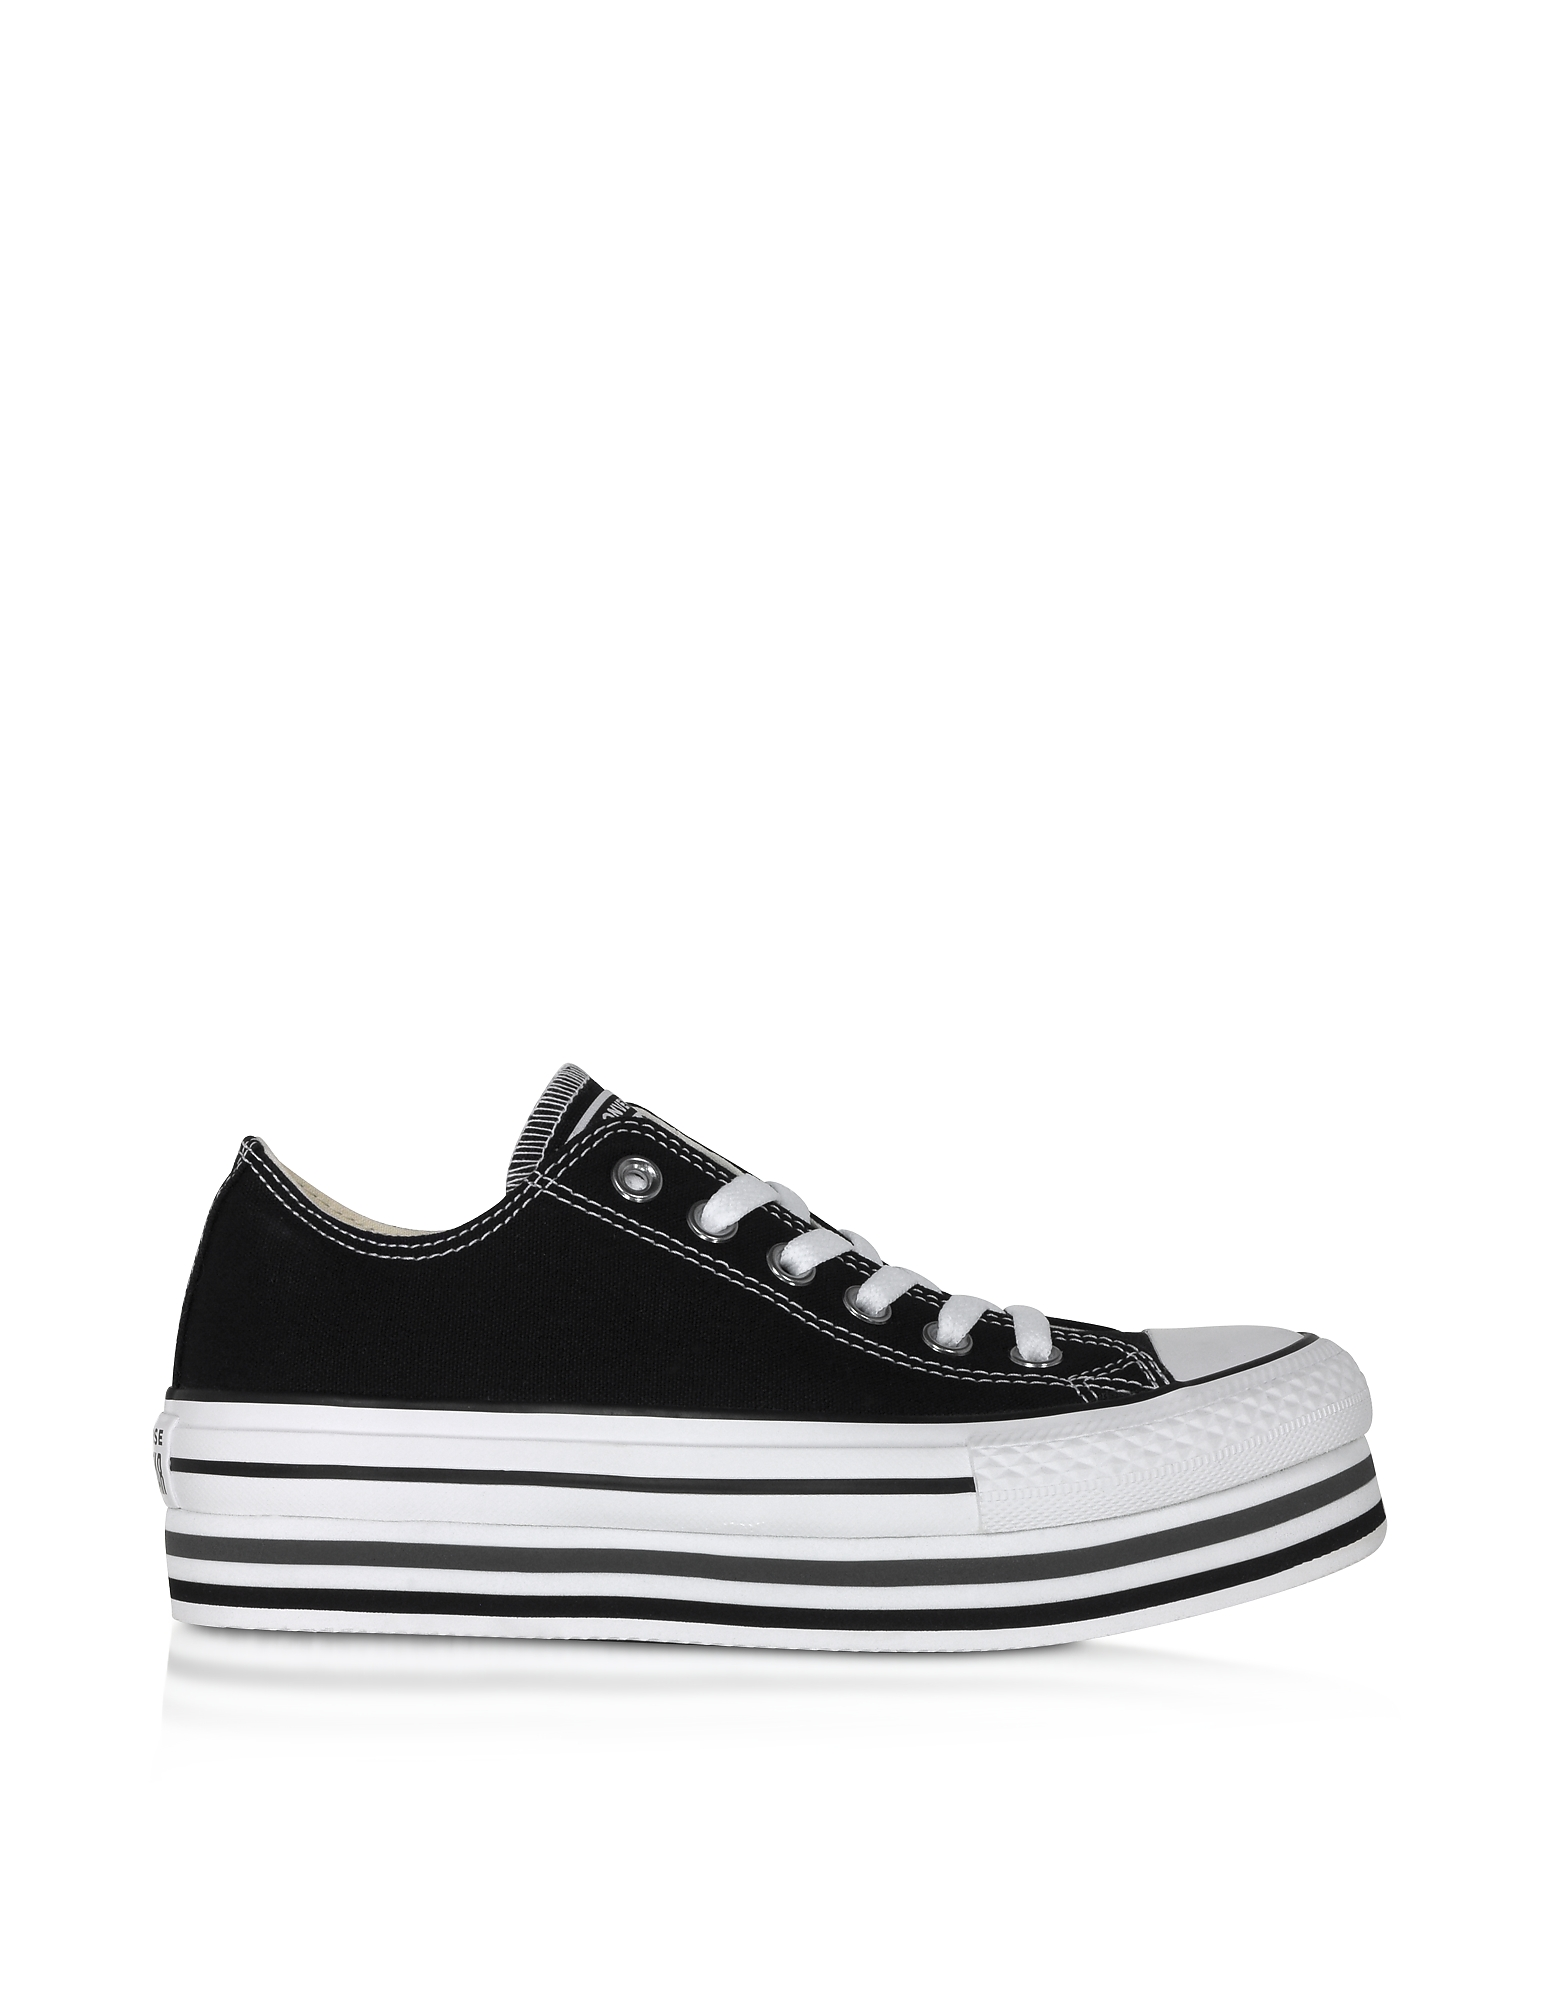 Converse Limited Edition Designer Shoes, Black Chuck Taylor All Star Platform EVA Layer